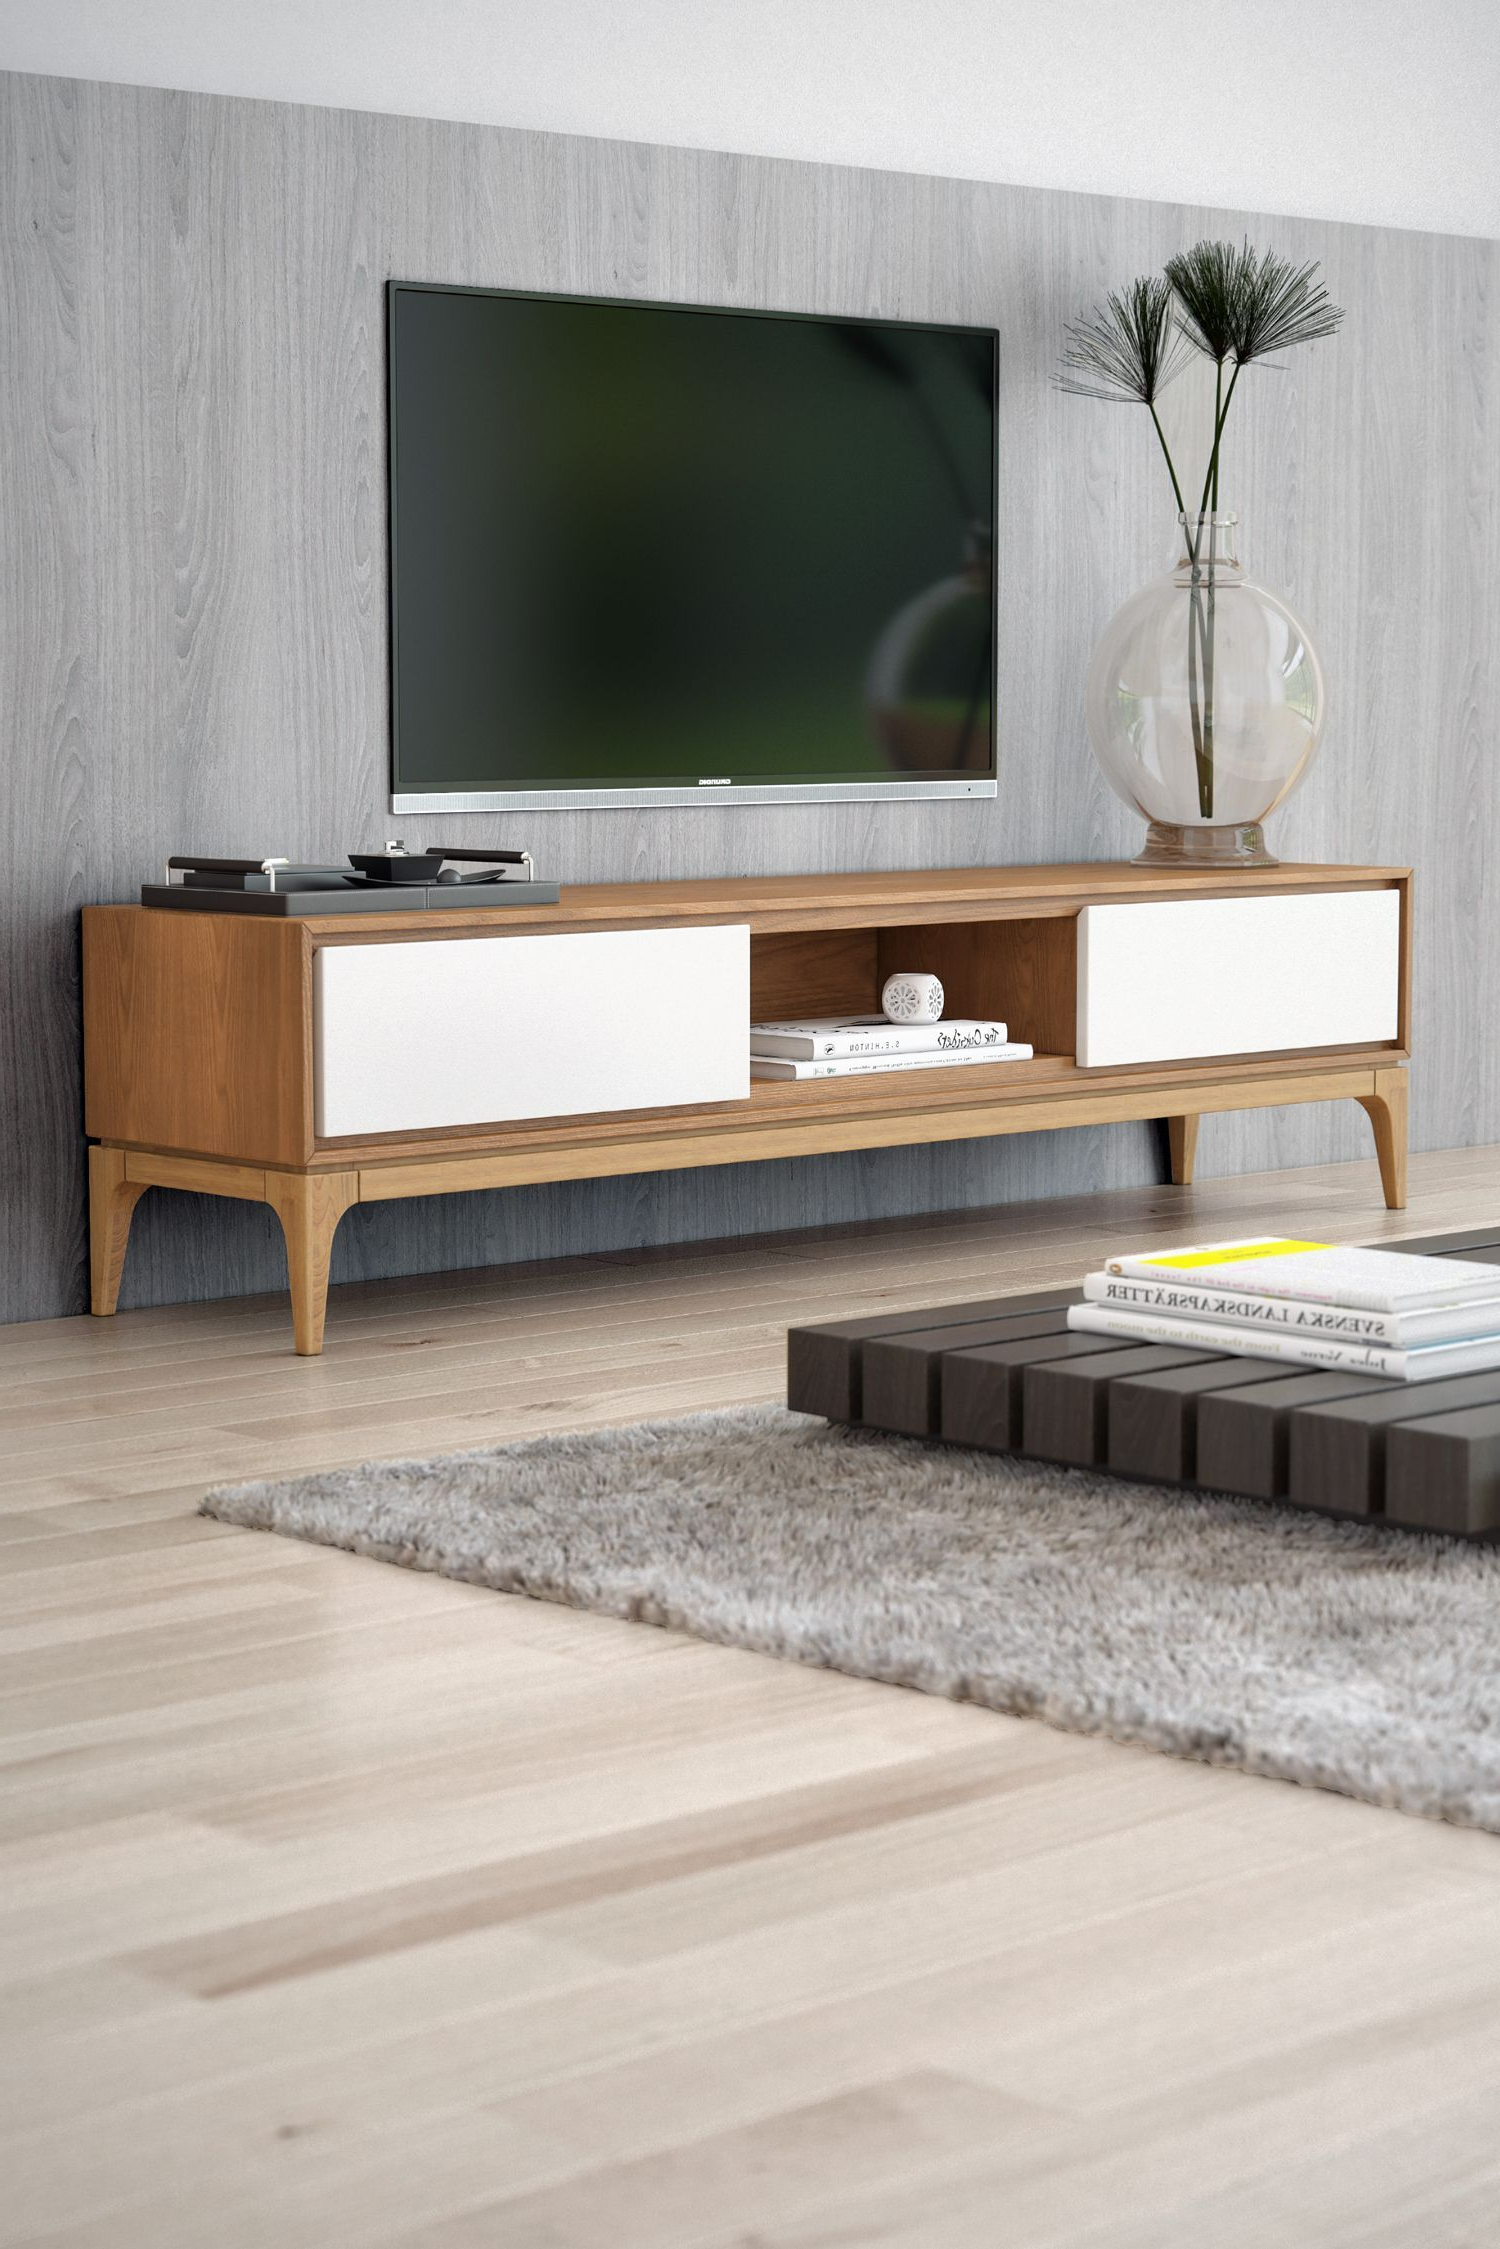 Rove Concepts Rove Concepts Mid Century Furniture With Regard To Vista 60 Inch Tv Stands (Gallery 15 of 20)